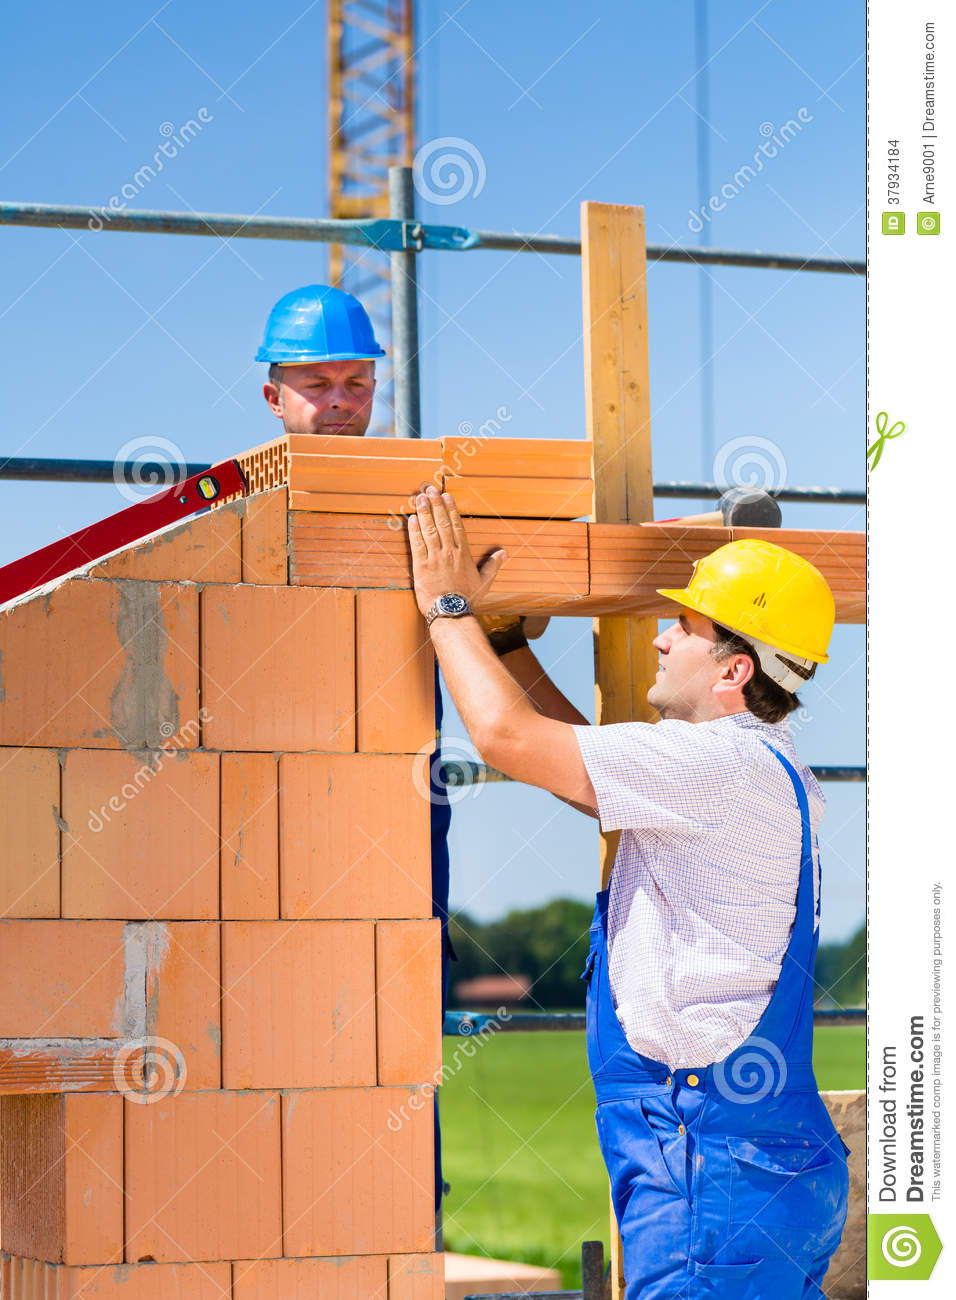 Bricklayer Or Builders On Construction Site Working Stock